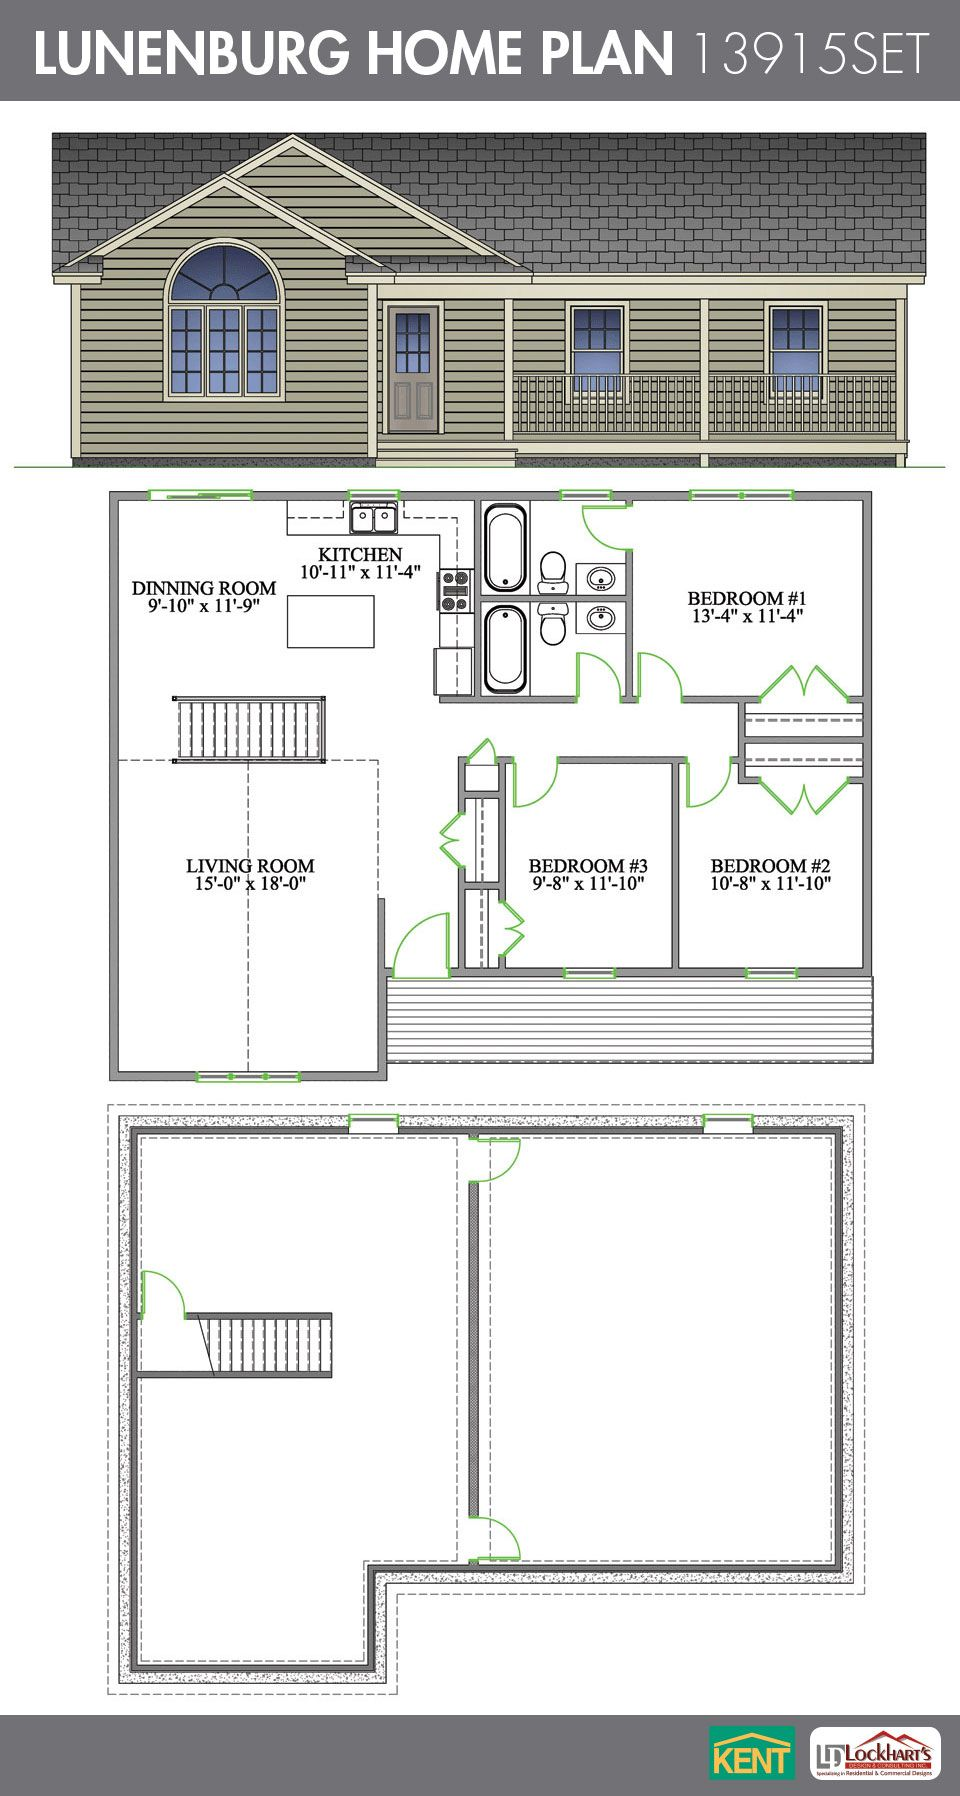 Lunenburg Home Plan Kent Building Supplies Arhitektura Doma Arhitektura Dom